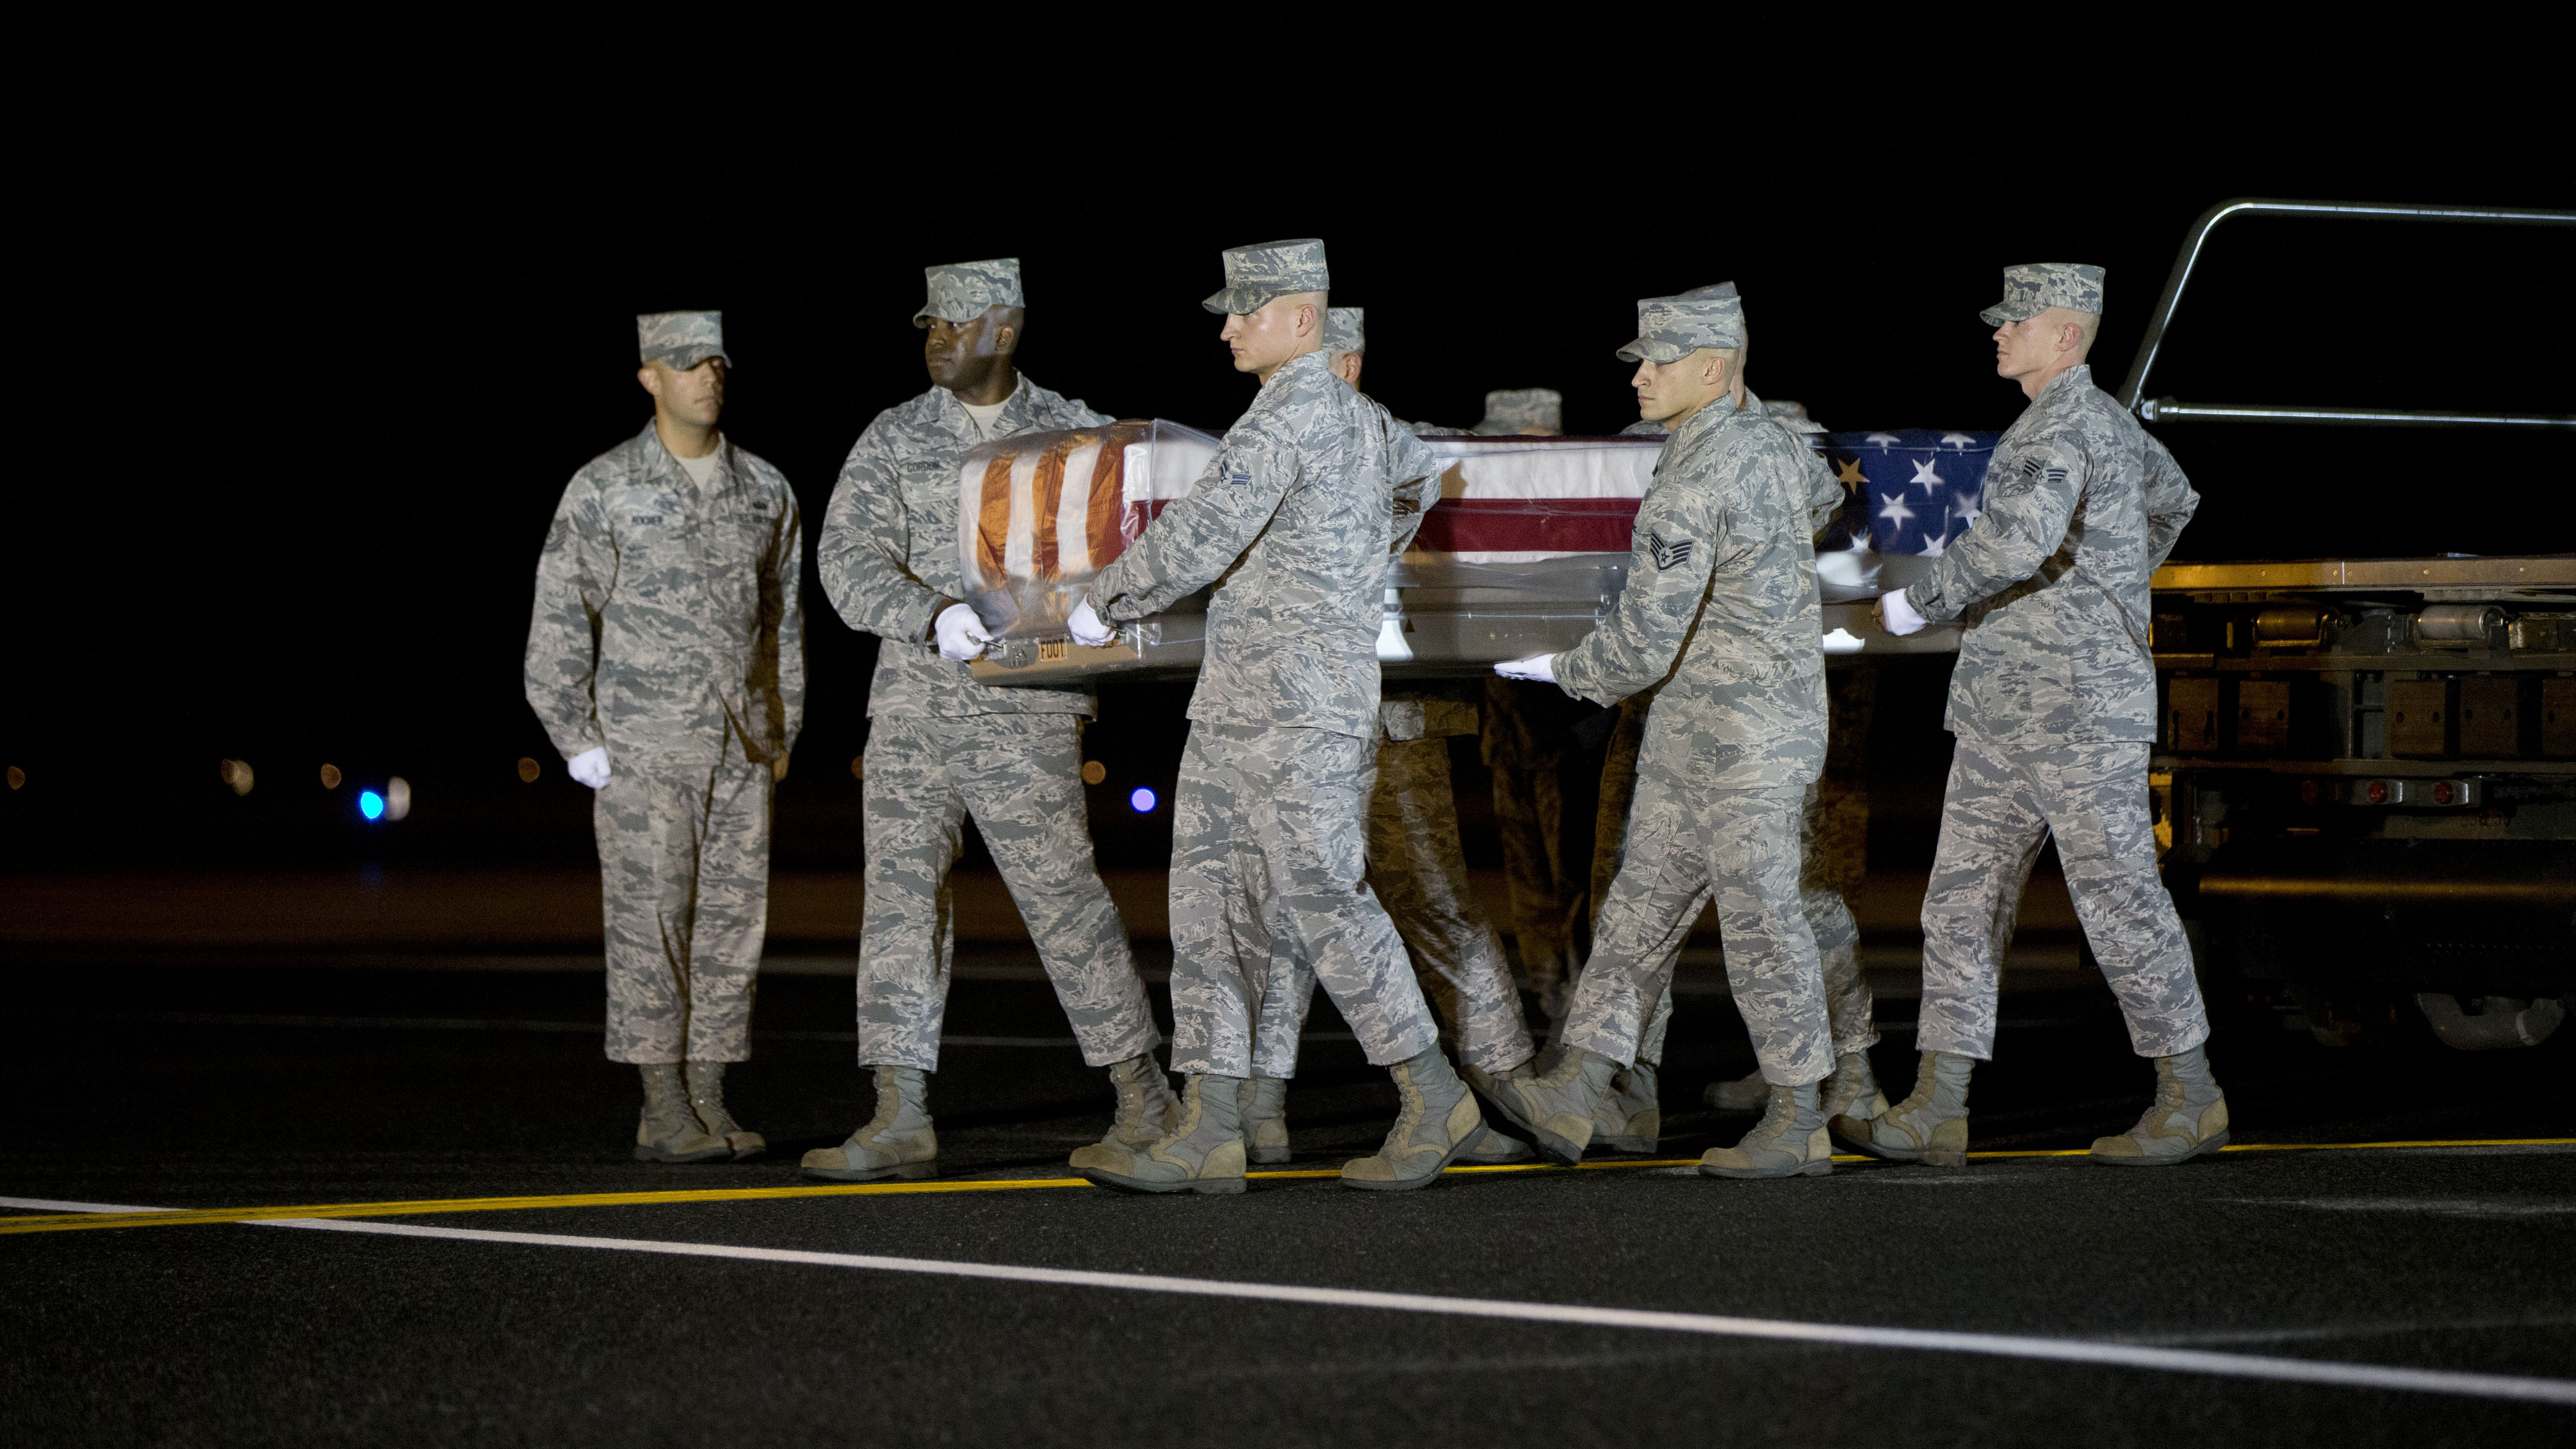 An Air Force team carries the transfer case with the remains of Maj. Phyllis J. Pelky at Dover Air Force Base, Del., on Tuesday. Pelky, 45, was killed two days earlier in a helicopter crash in Afghanistan. Though the U.S. formally ended its combat role in Afghanistan last year, 25 Americans, including military personnel and civilians, have been killed there this year.